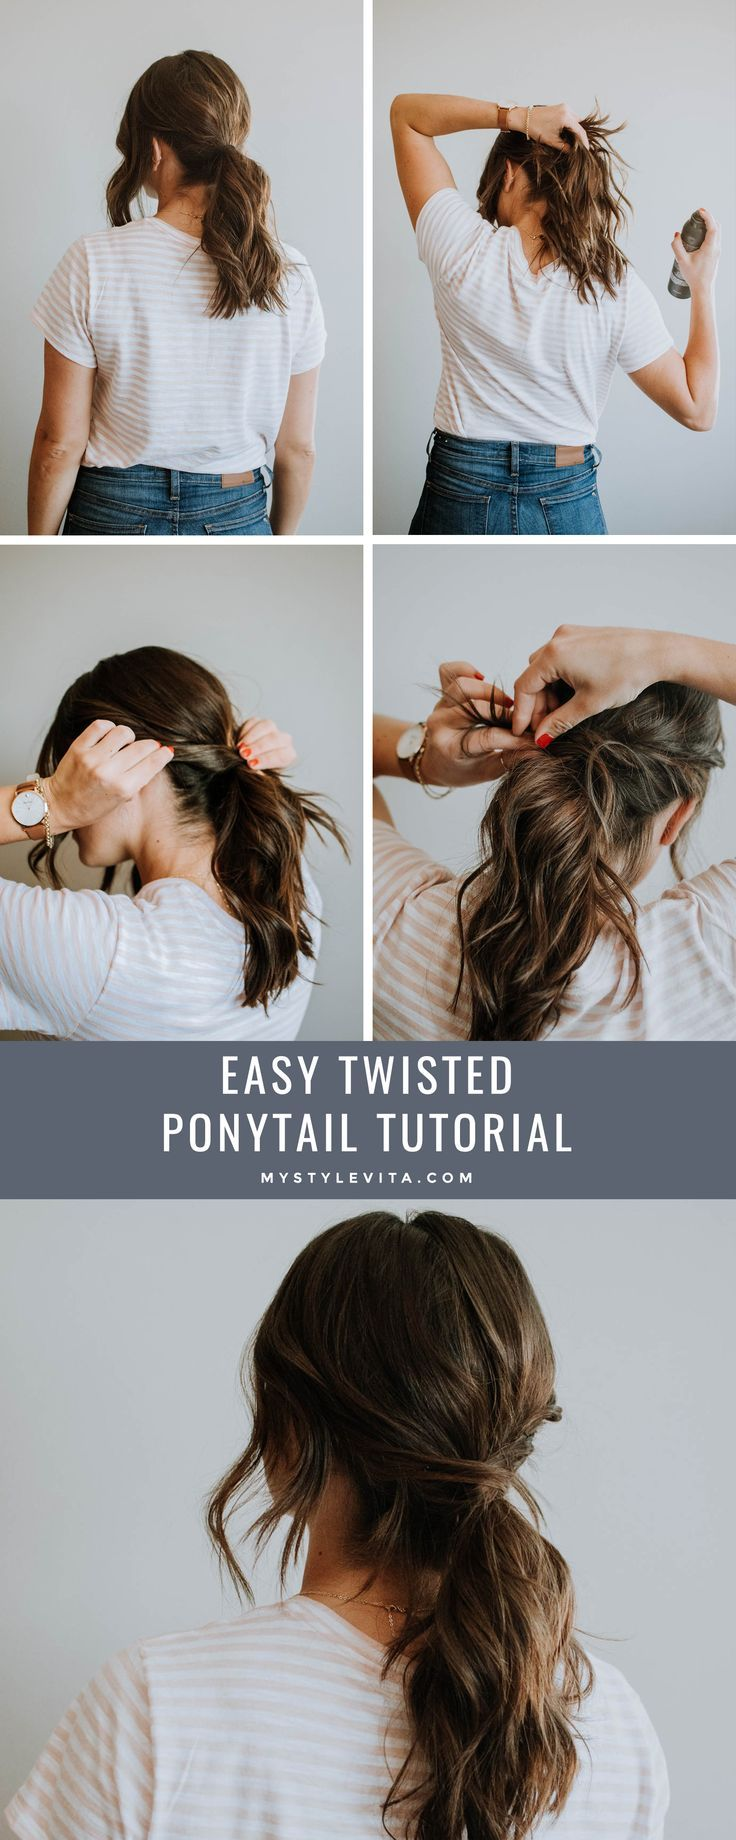 An Easy Twisted Ponytail Tutorial For Long Hair Twisted Ponytail For Short Hair Short Hairstyle I Hair Ponytail Styles Low Ponytail Hairstyles Twist Ponytail